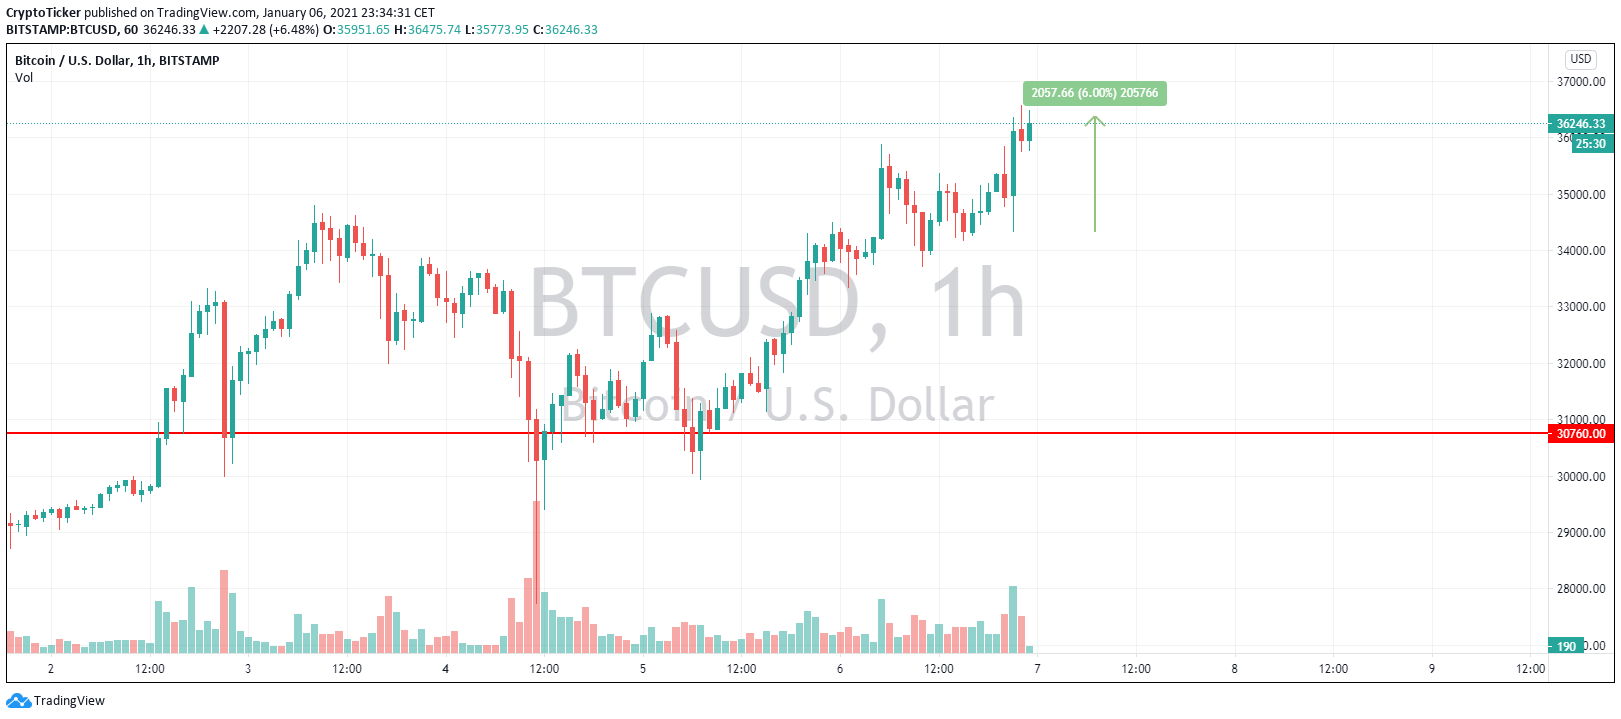 BTC/USD 1-hour chart showing Bitcoin's price increase in parallel with the US chaos